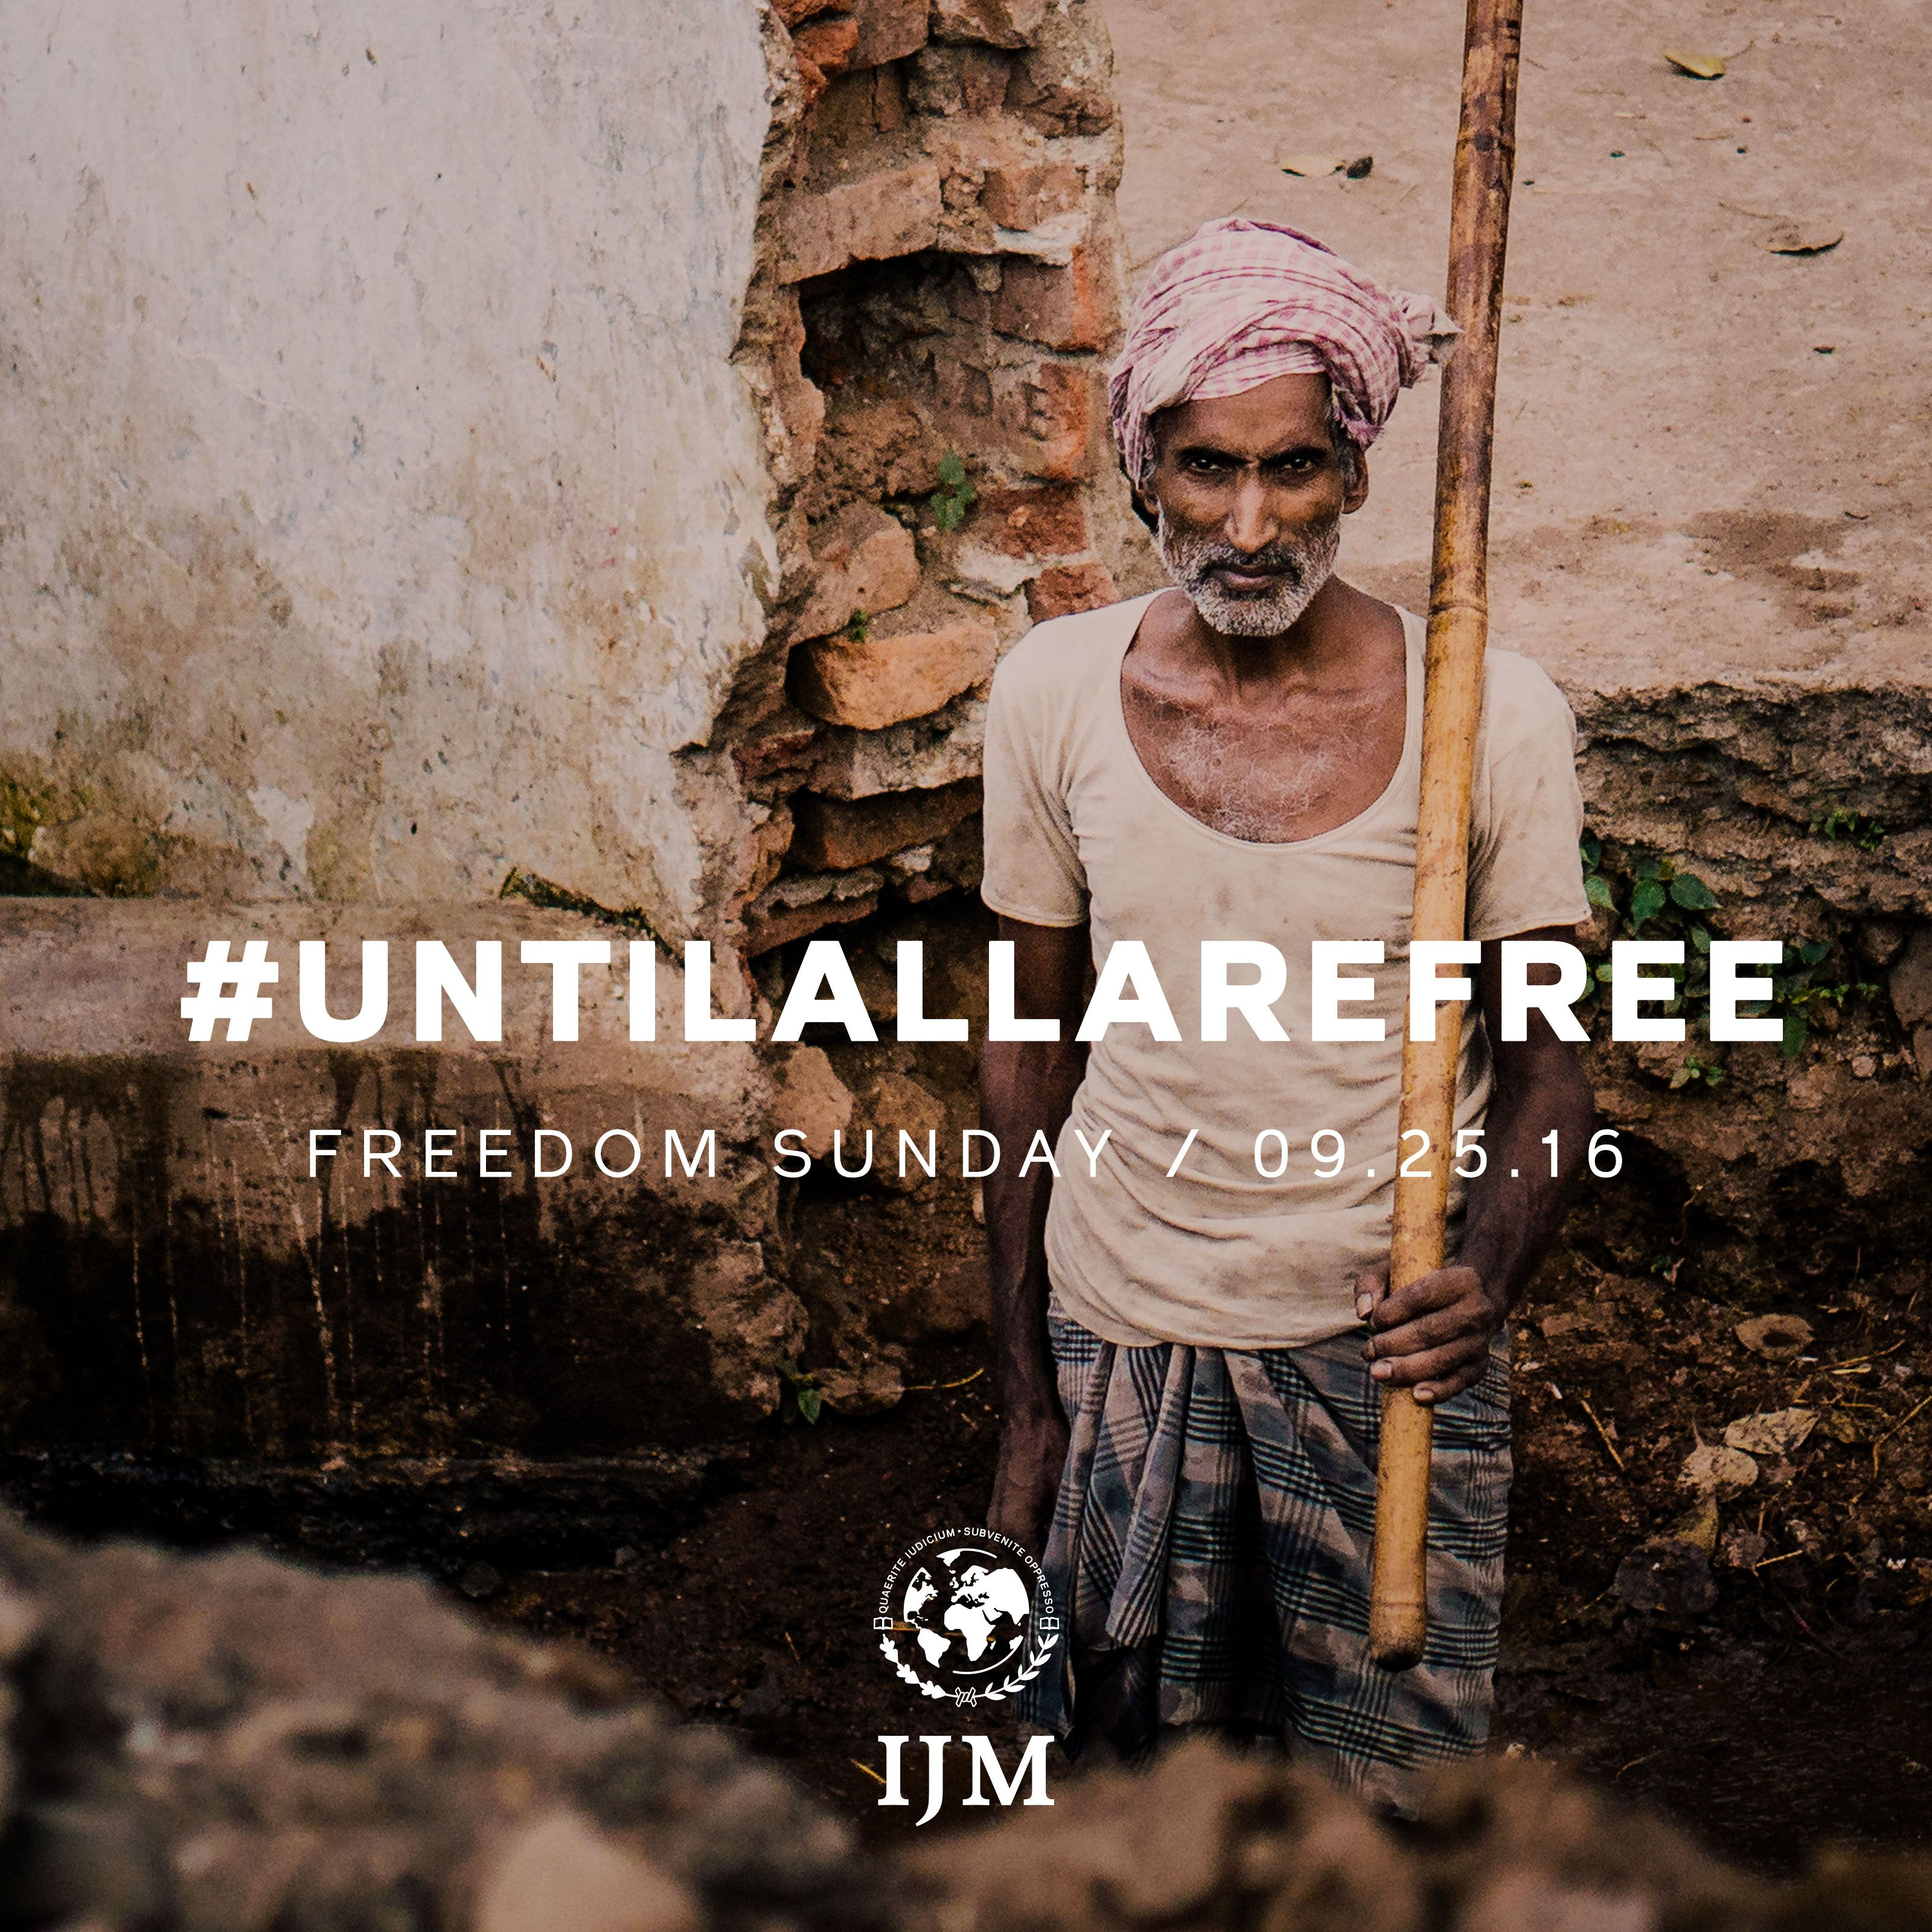 We will not stop fighting! We won't give up until all are free! Join us - www.ijm.org/freedom-sunday